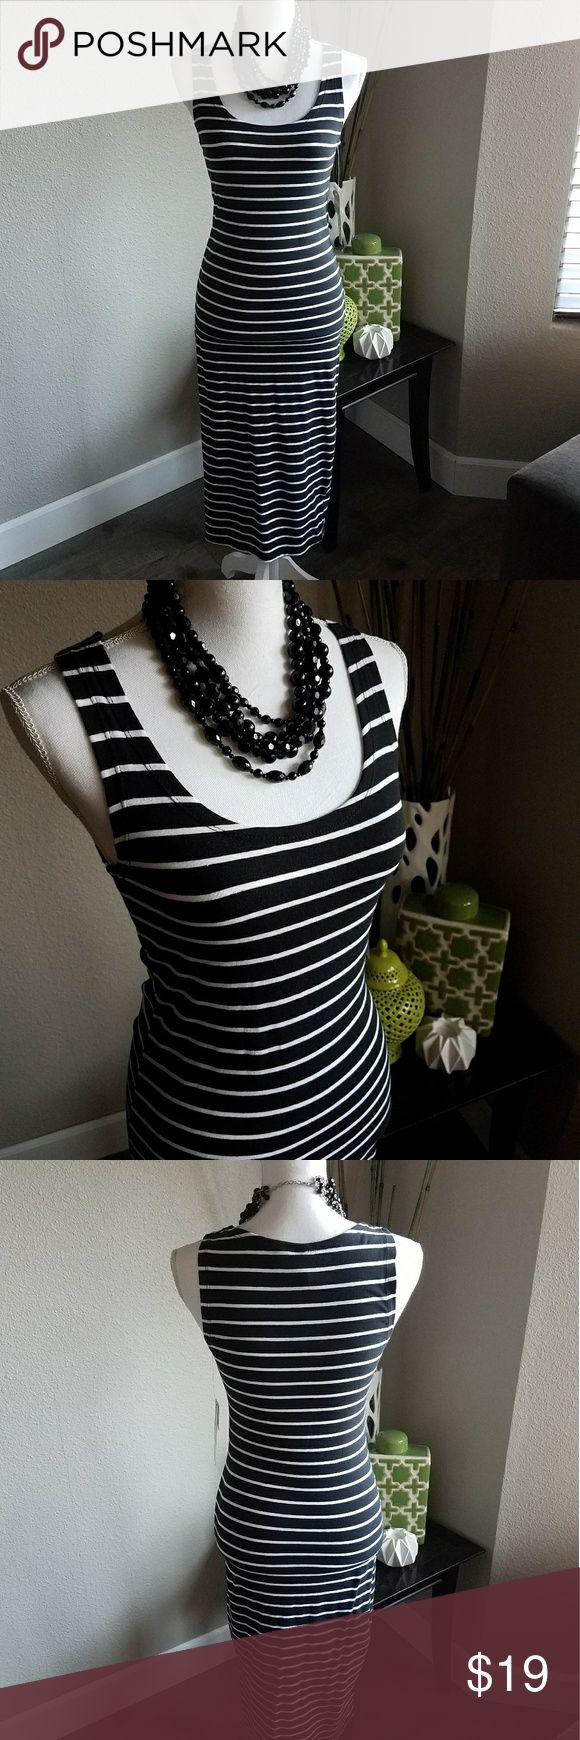 Black and white striped bodycon dress New with tags.  Black and white striped bodycon dress.   Very cute and stylish.  Perfect for this summer!  Smoke free and pet free home. Dresses